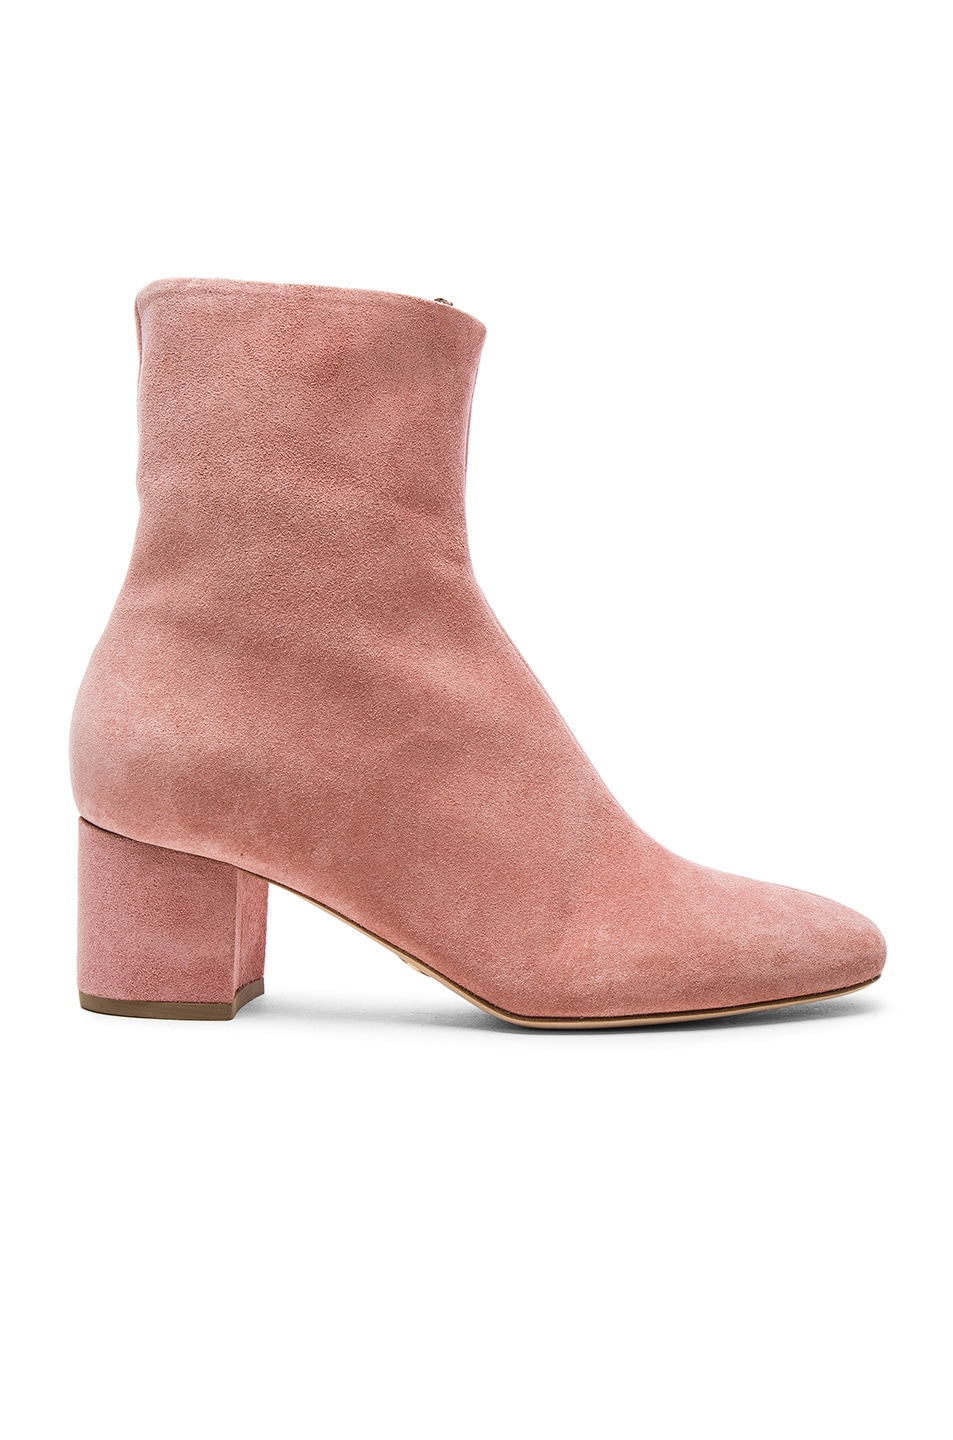 Image 1 of Brother Vellies Kaya Boot in Flamingo Suede